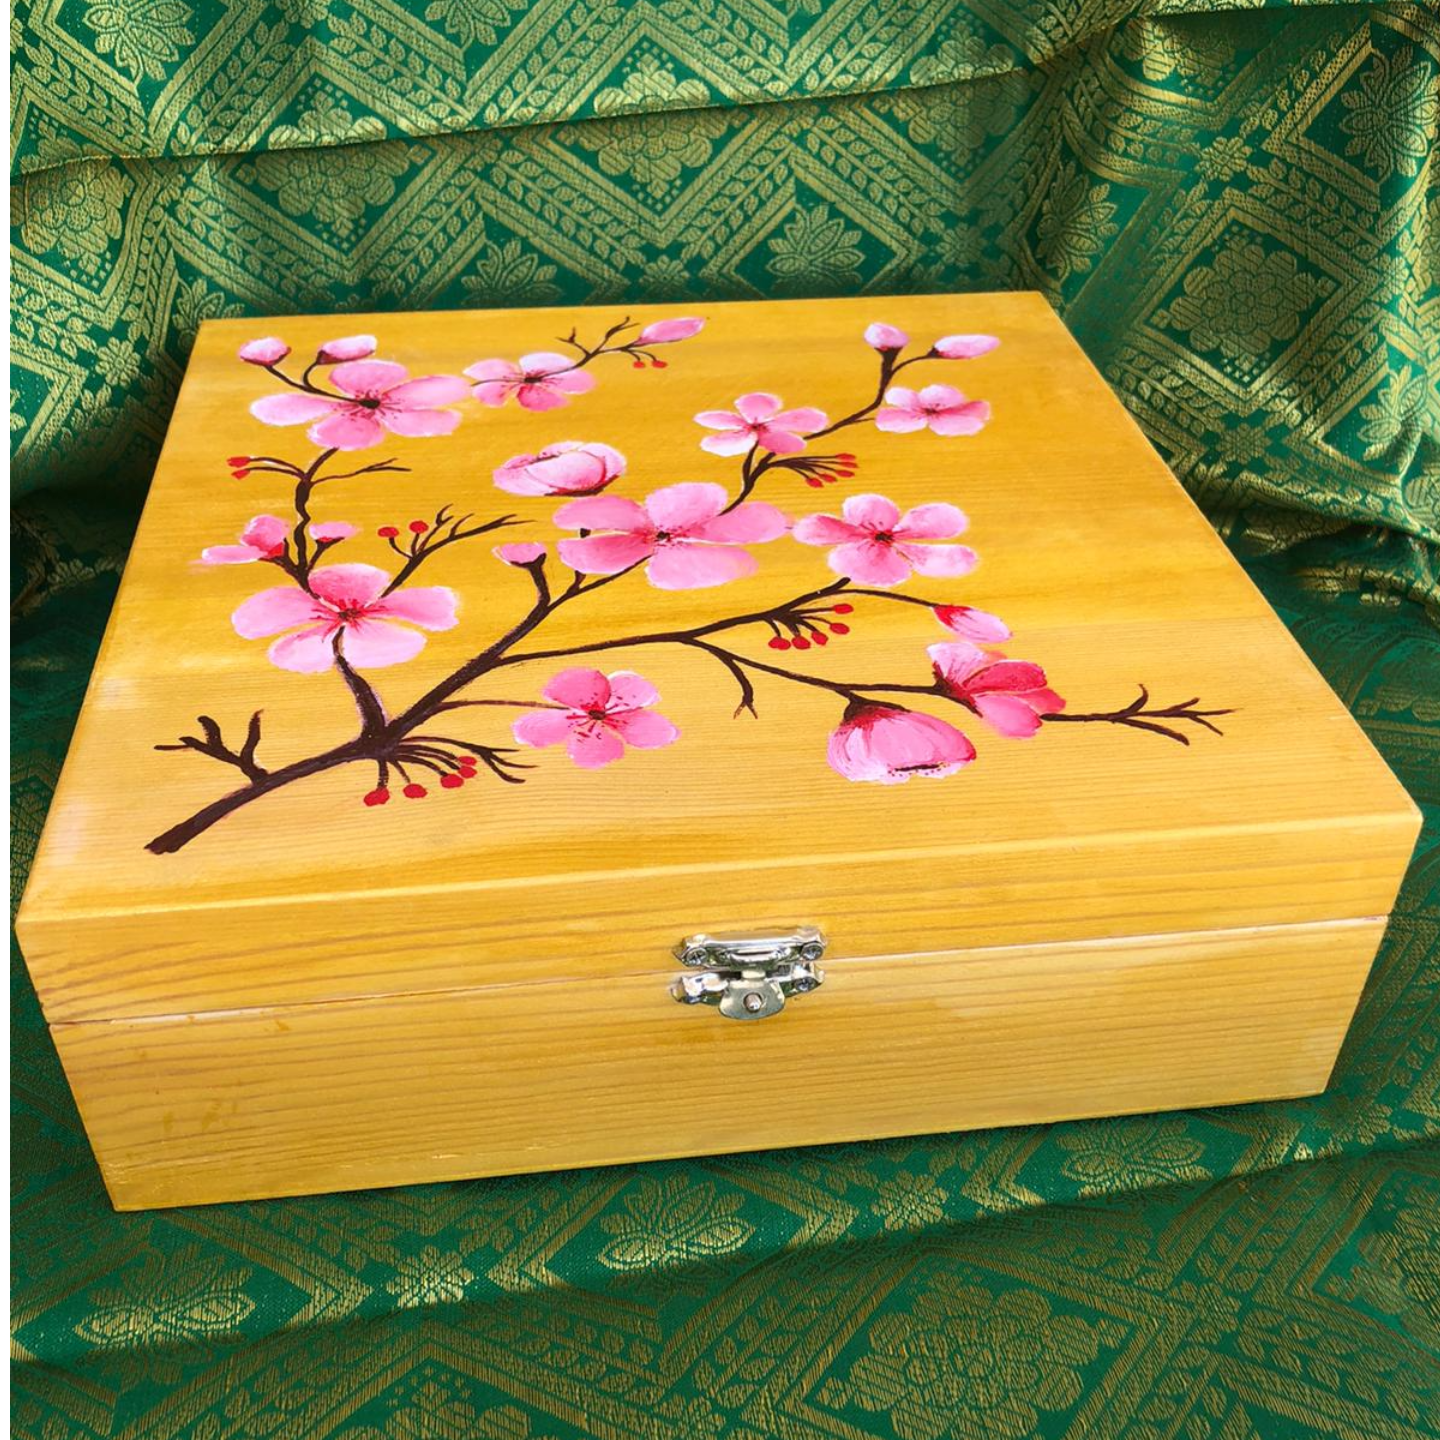 Gift - Wooden box